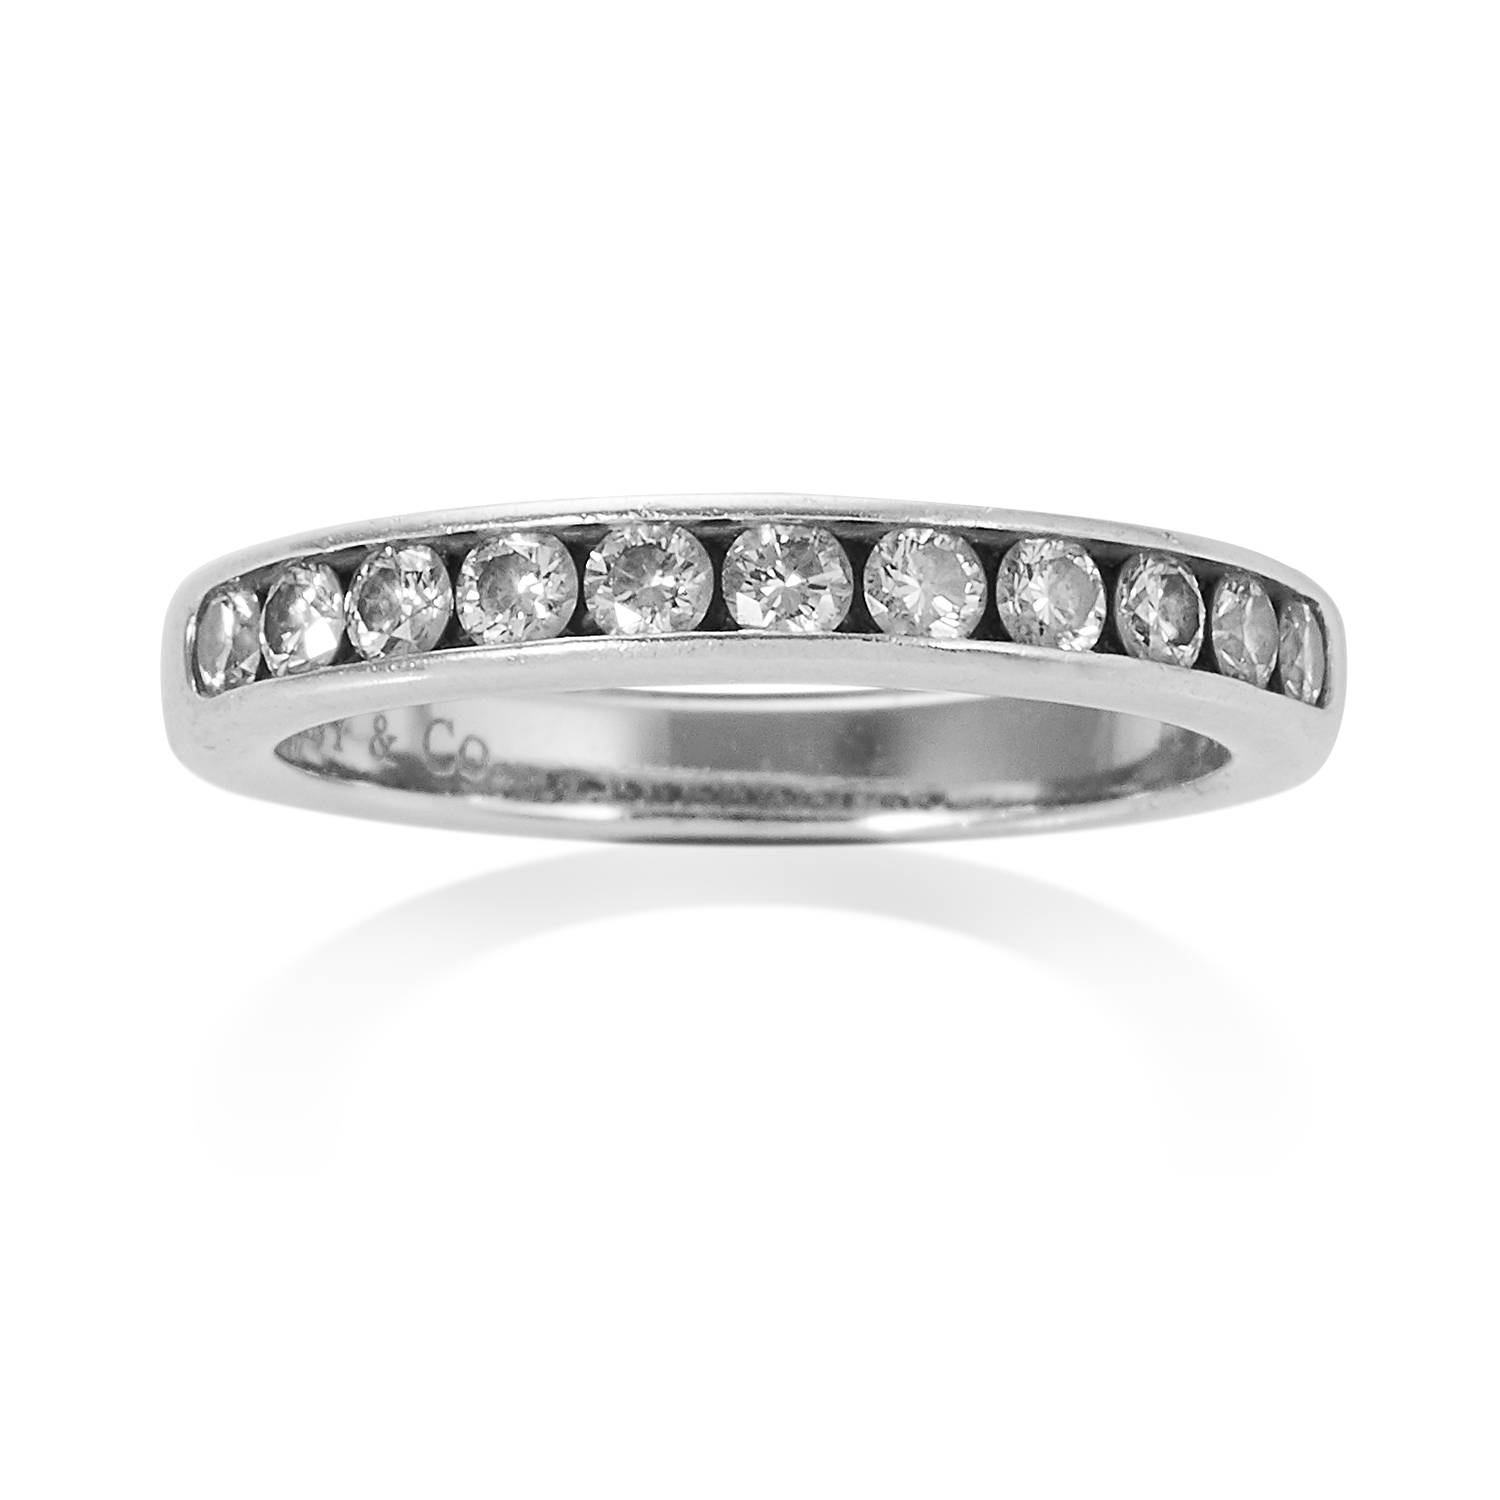 Los 7 - A 0.44 CARAT DIAMOND HALF ETERNITY RING, TIFFANY & CO in platinum, set with eleven round brilliant